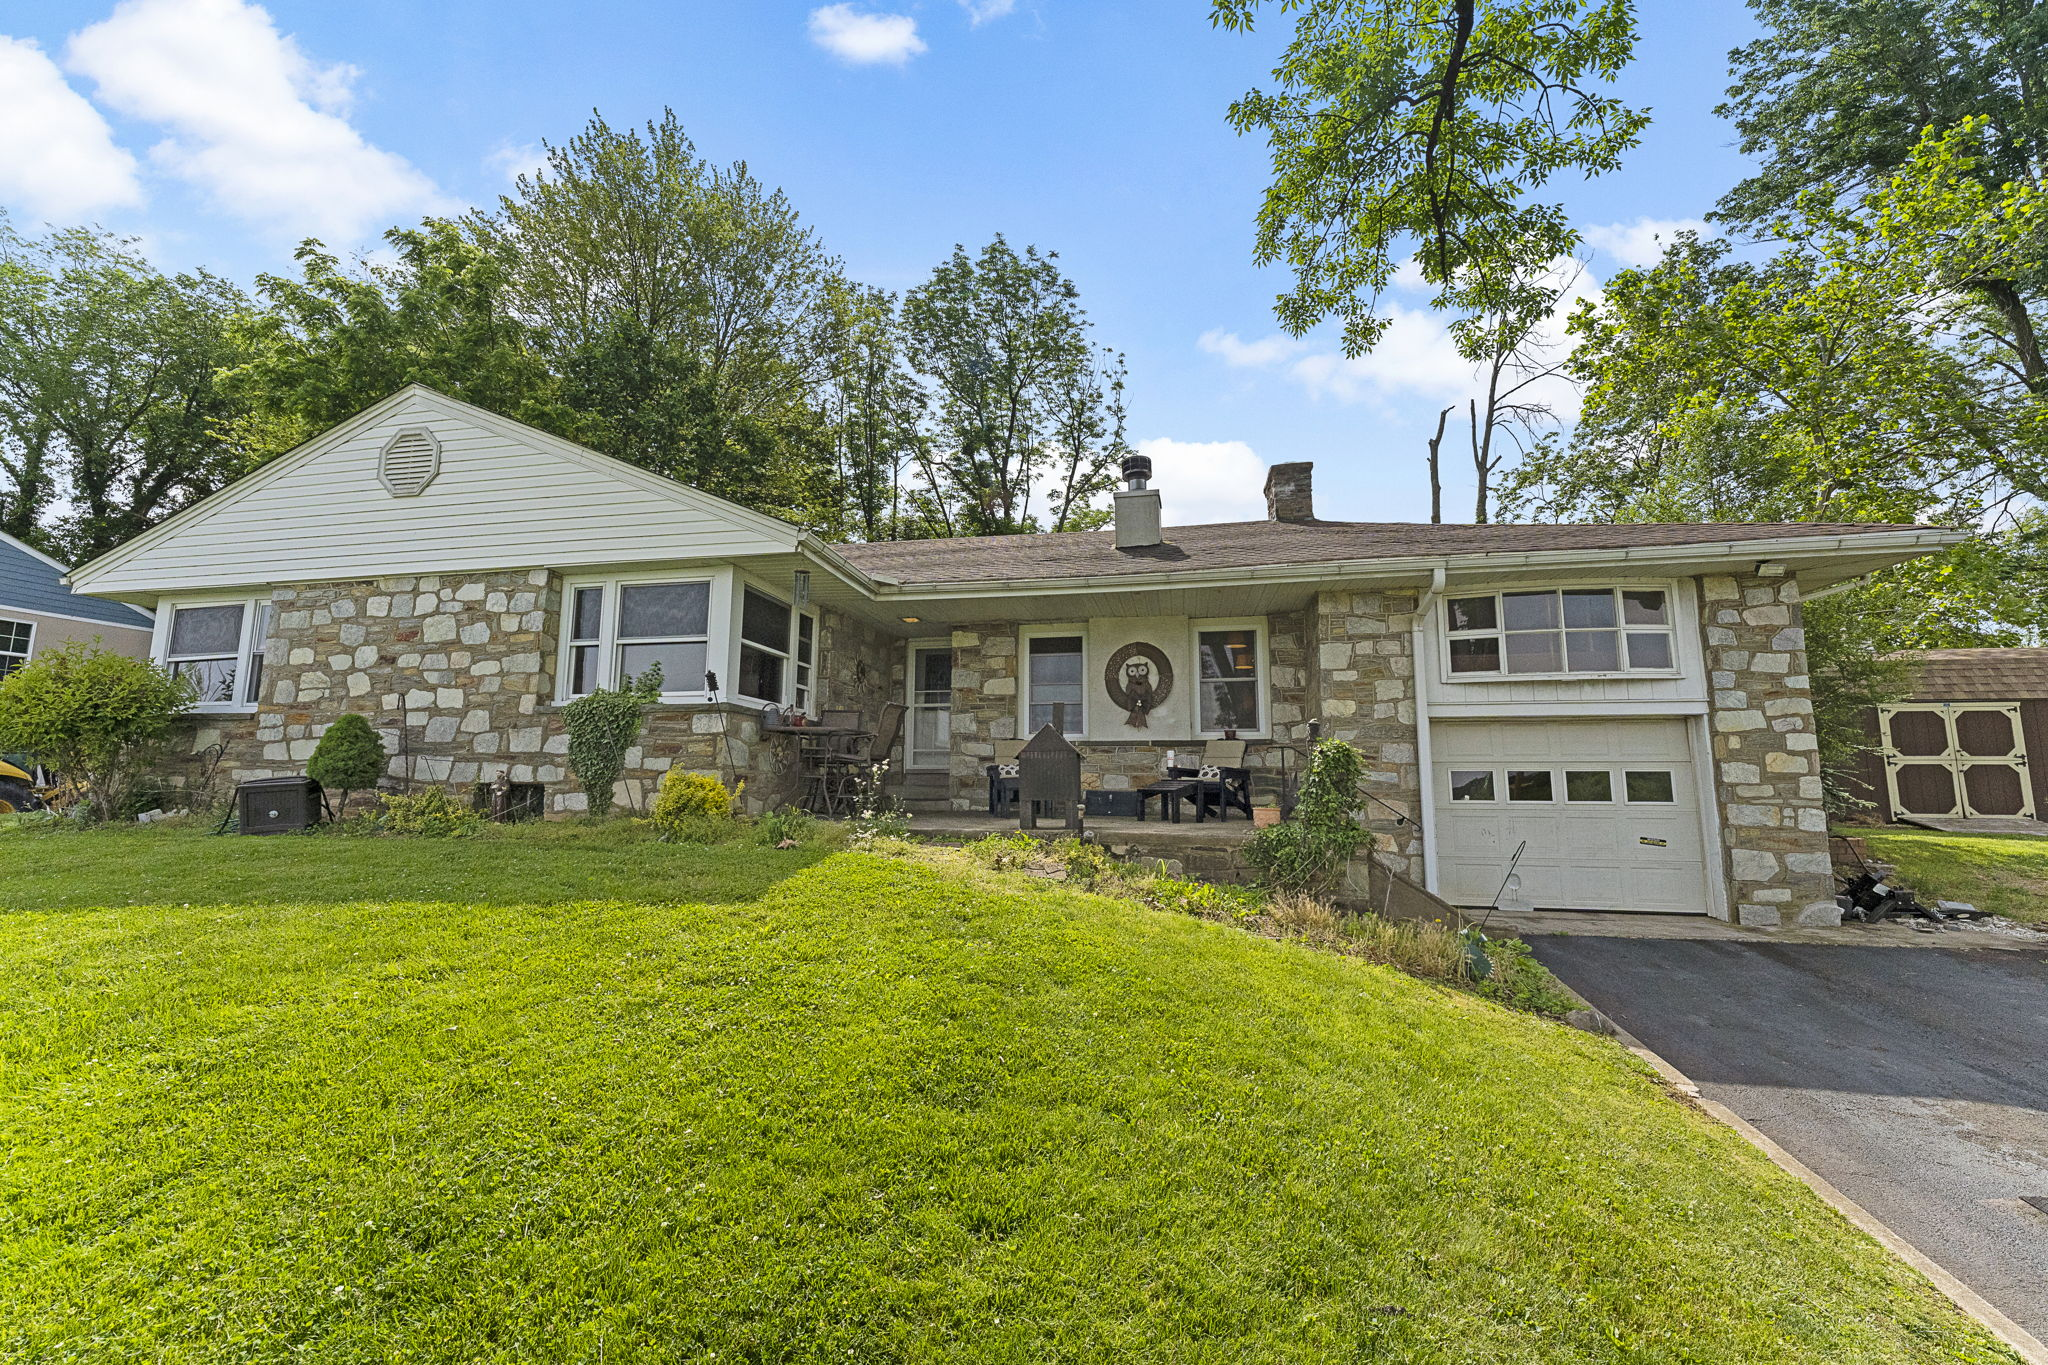 Excellent Opportunity To Own A Beautiful Stone Front Ranch Home Just Walking Distance To The Elmwood Park Zoo!